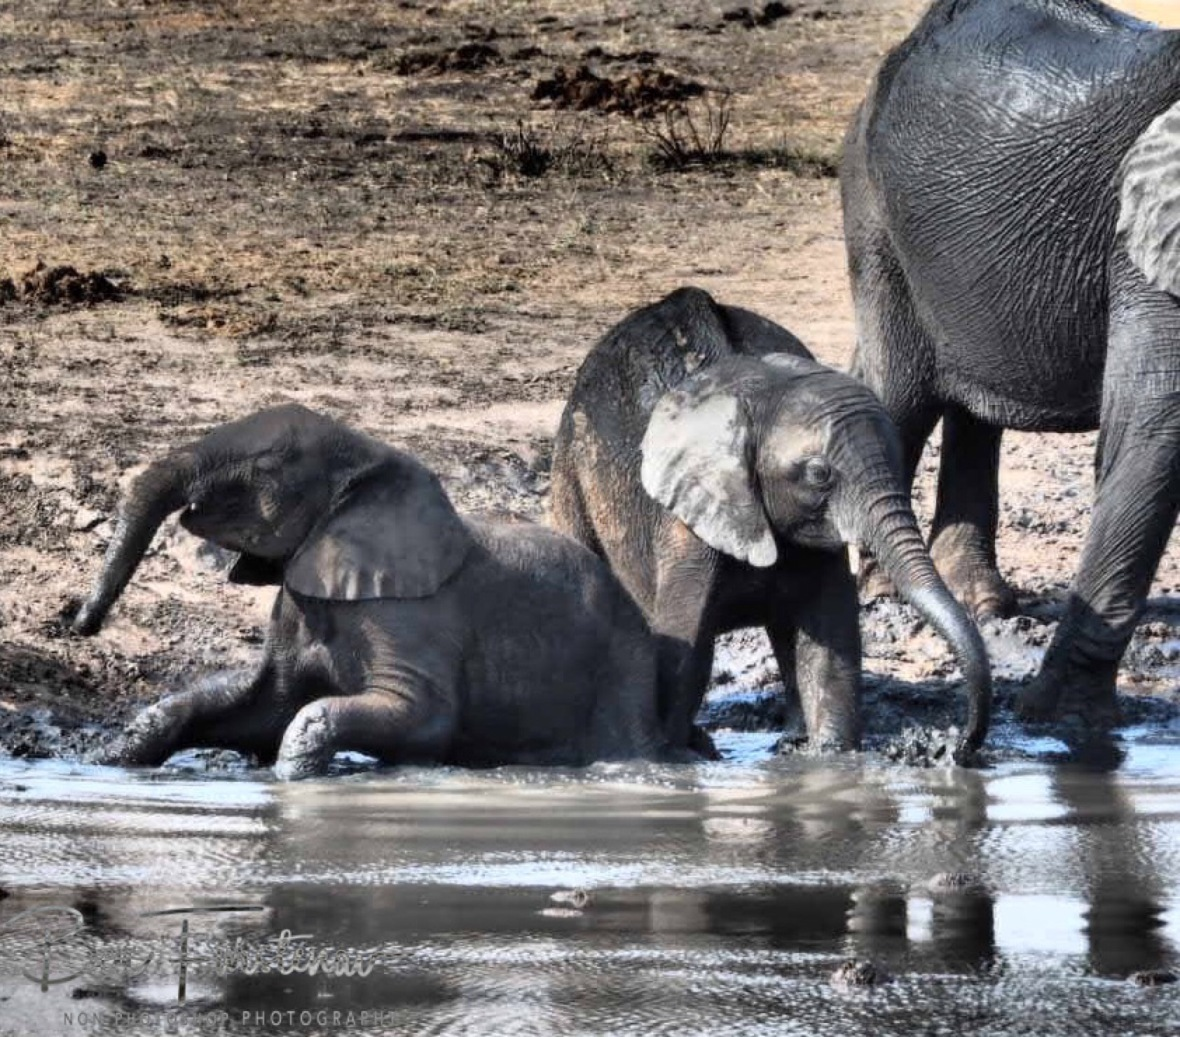 Youngsters enjoy the mud immensely, Khaudum National Park, Namibia